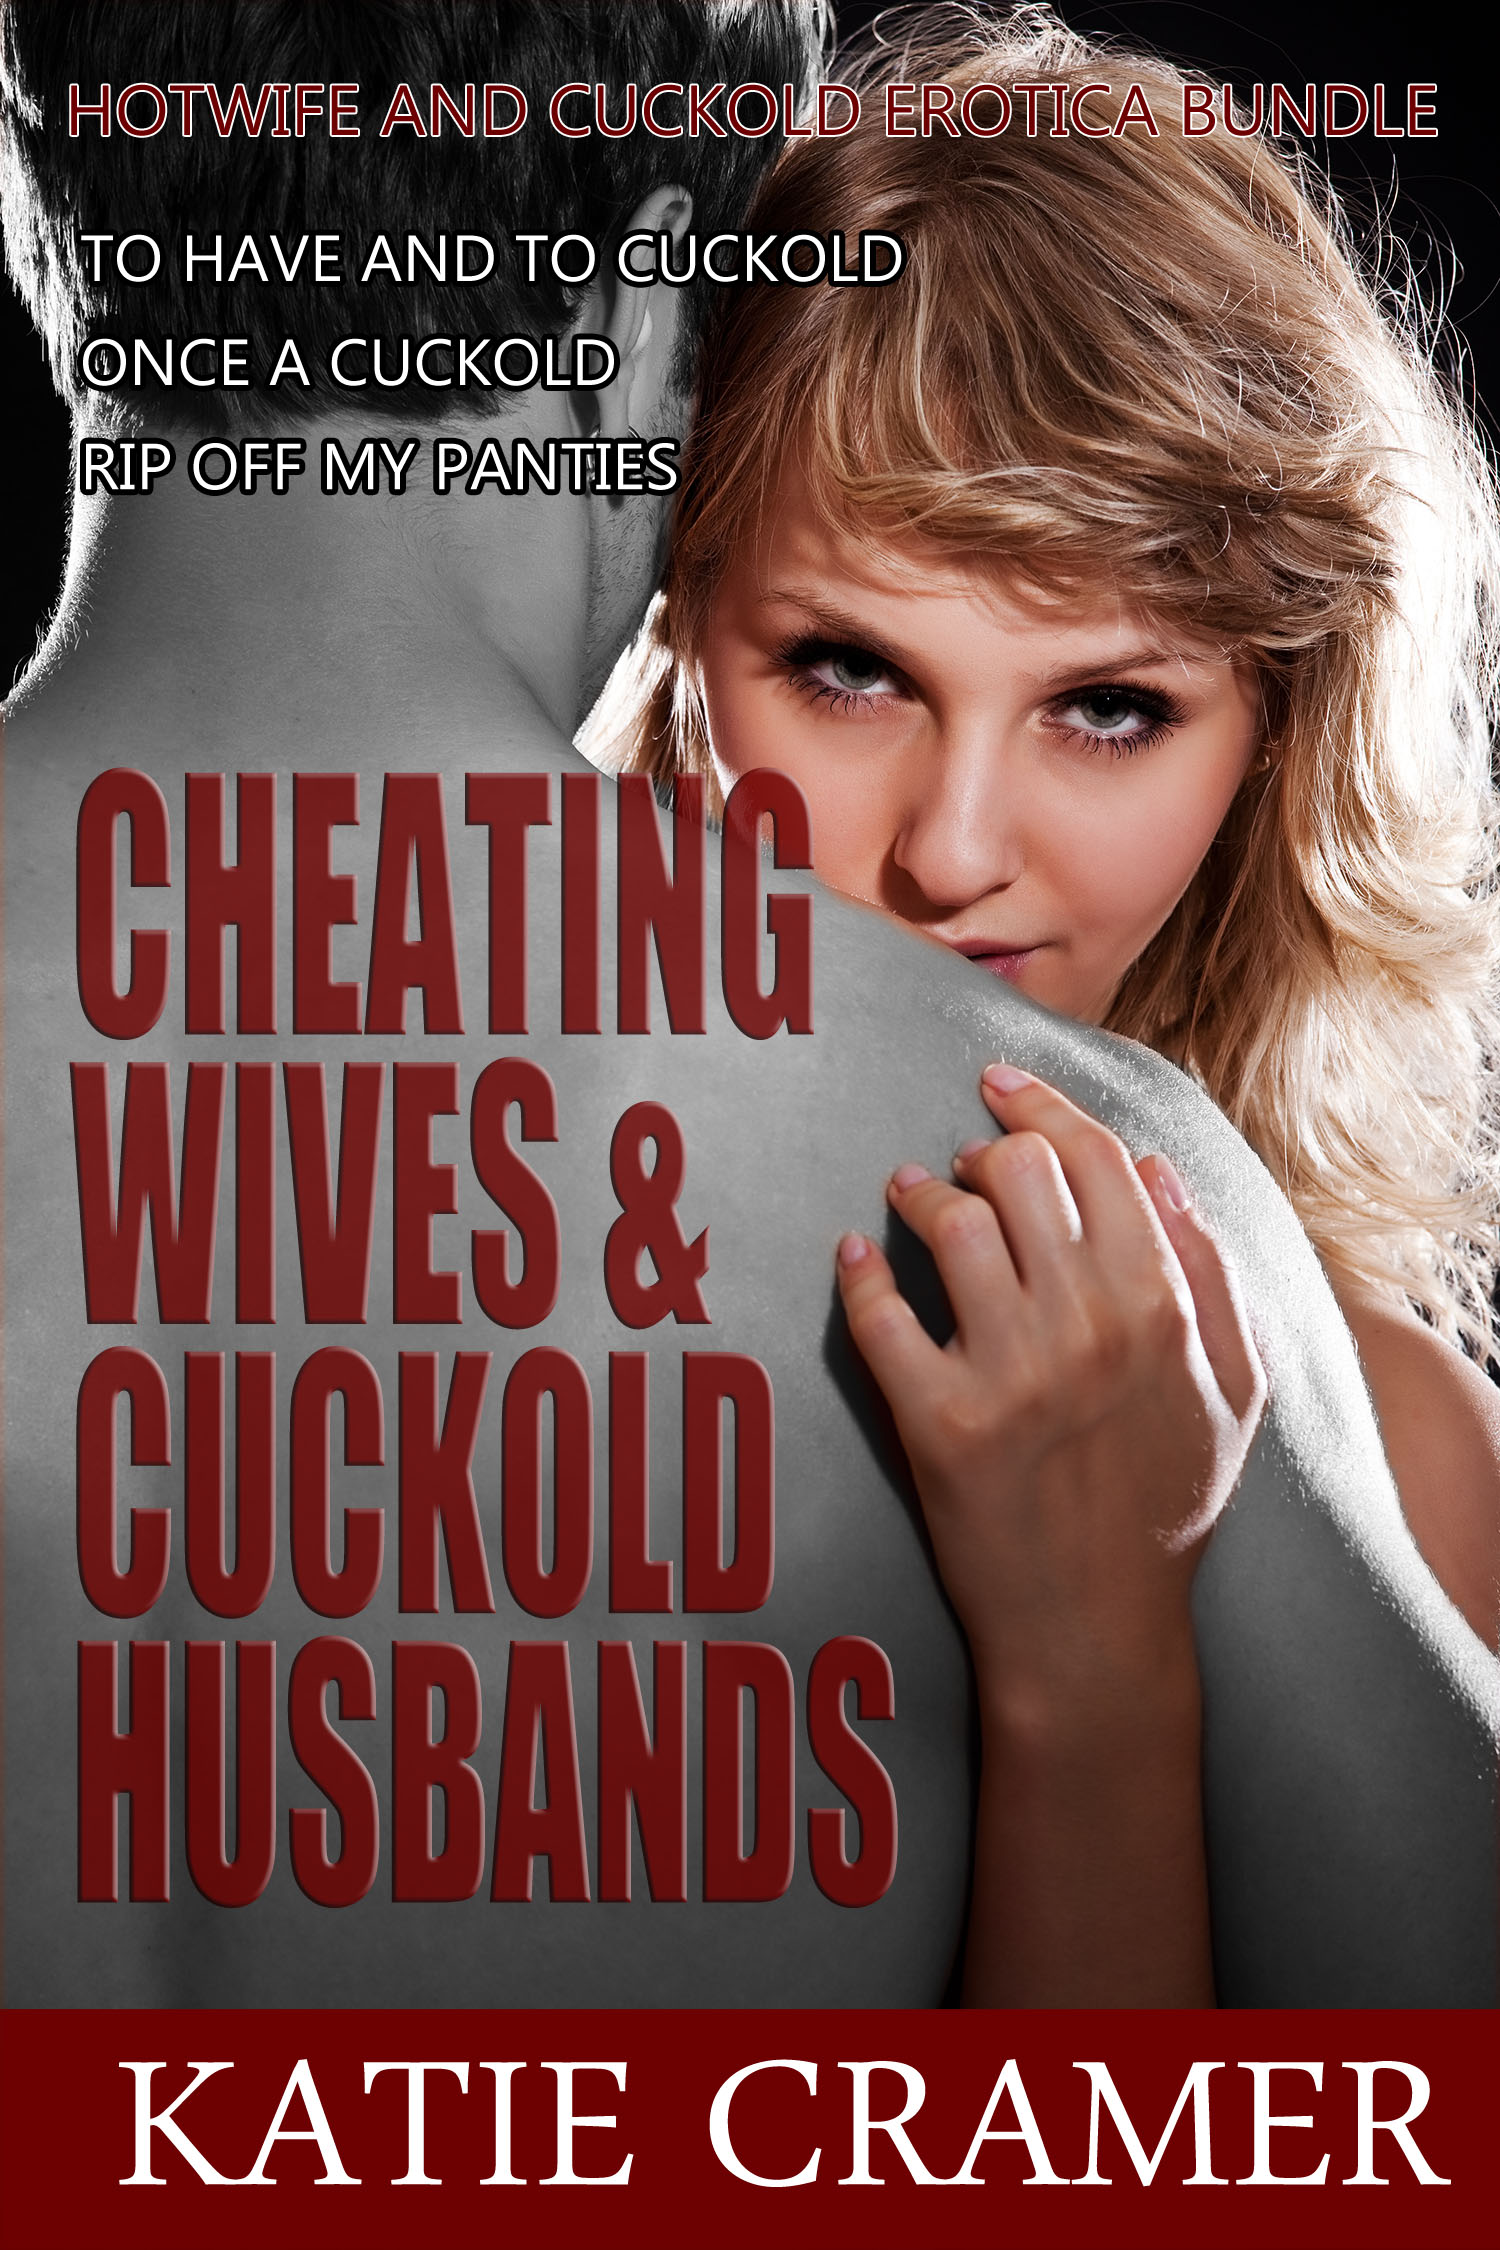 Free sex stories about wives